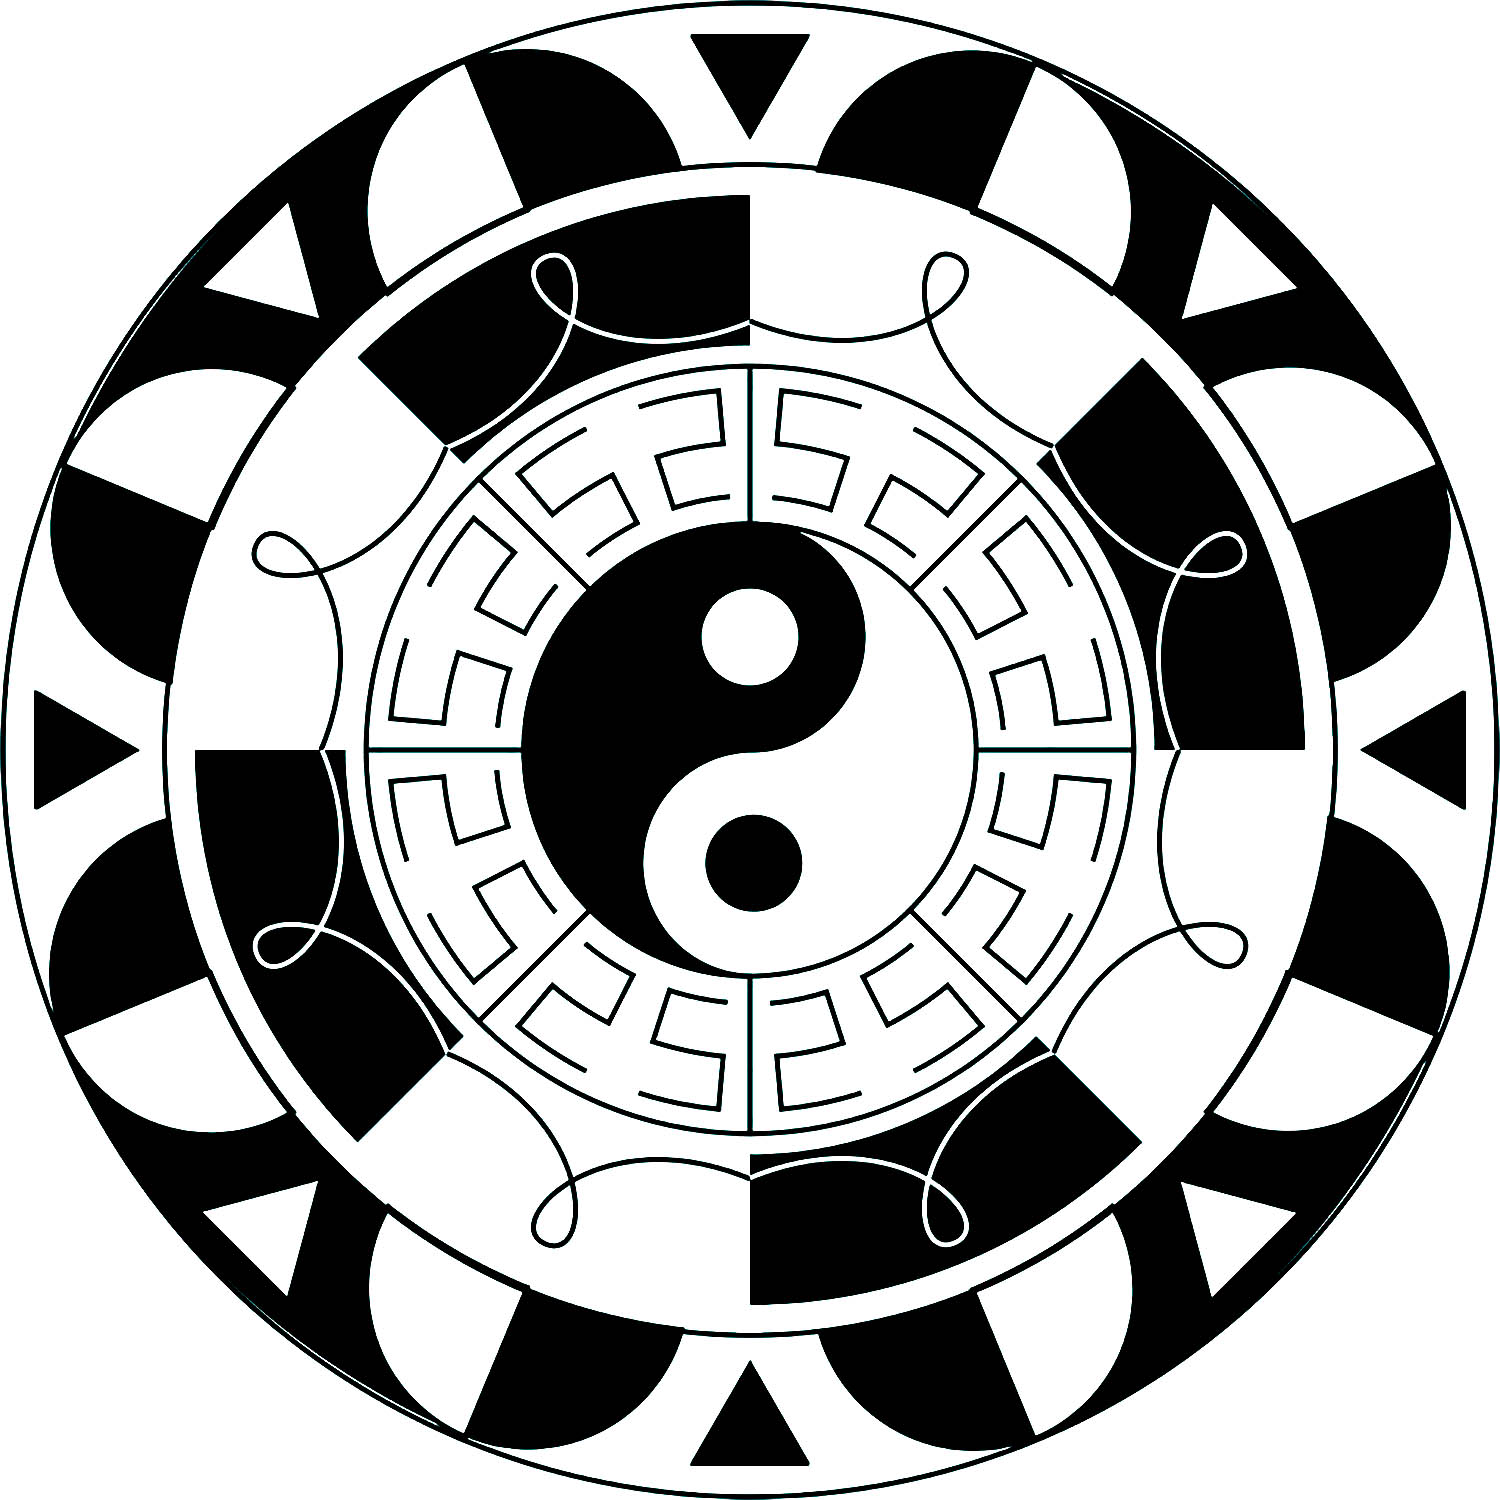 Yin & Yang is an ancient Chinese symbol which represents dual nature of things like light and dark, good and evil, positive and negative.